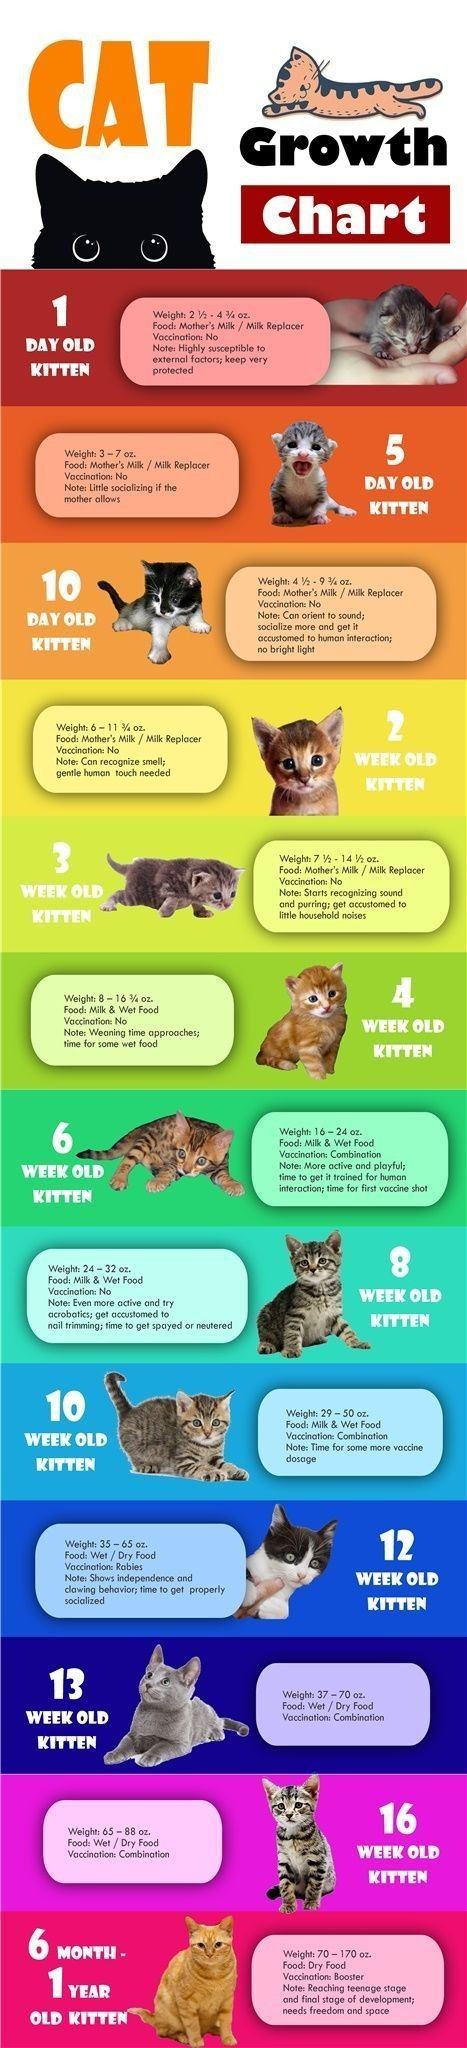 Kitten Growth Development In 2020 Cat Infographic Kitten Care Kitten